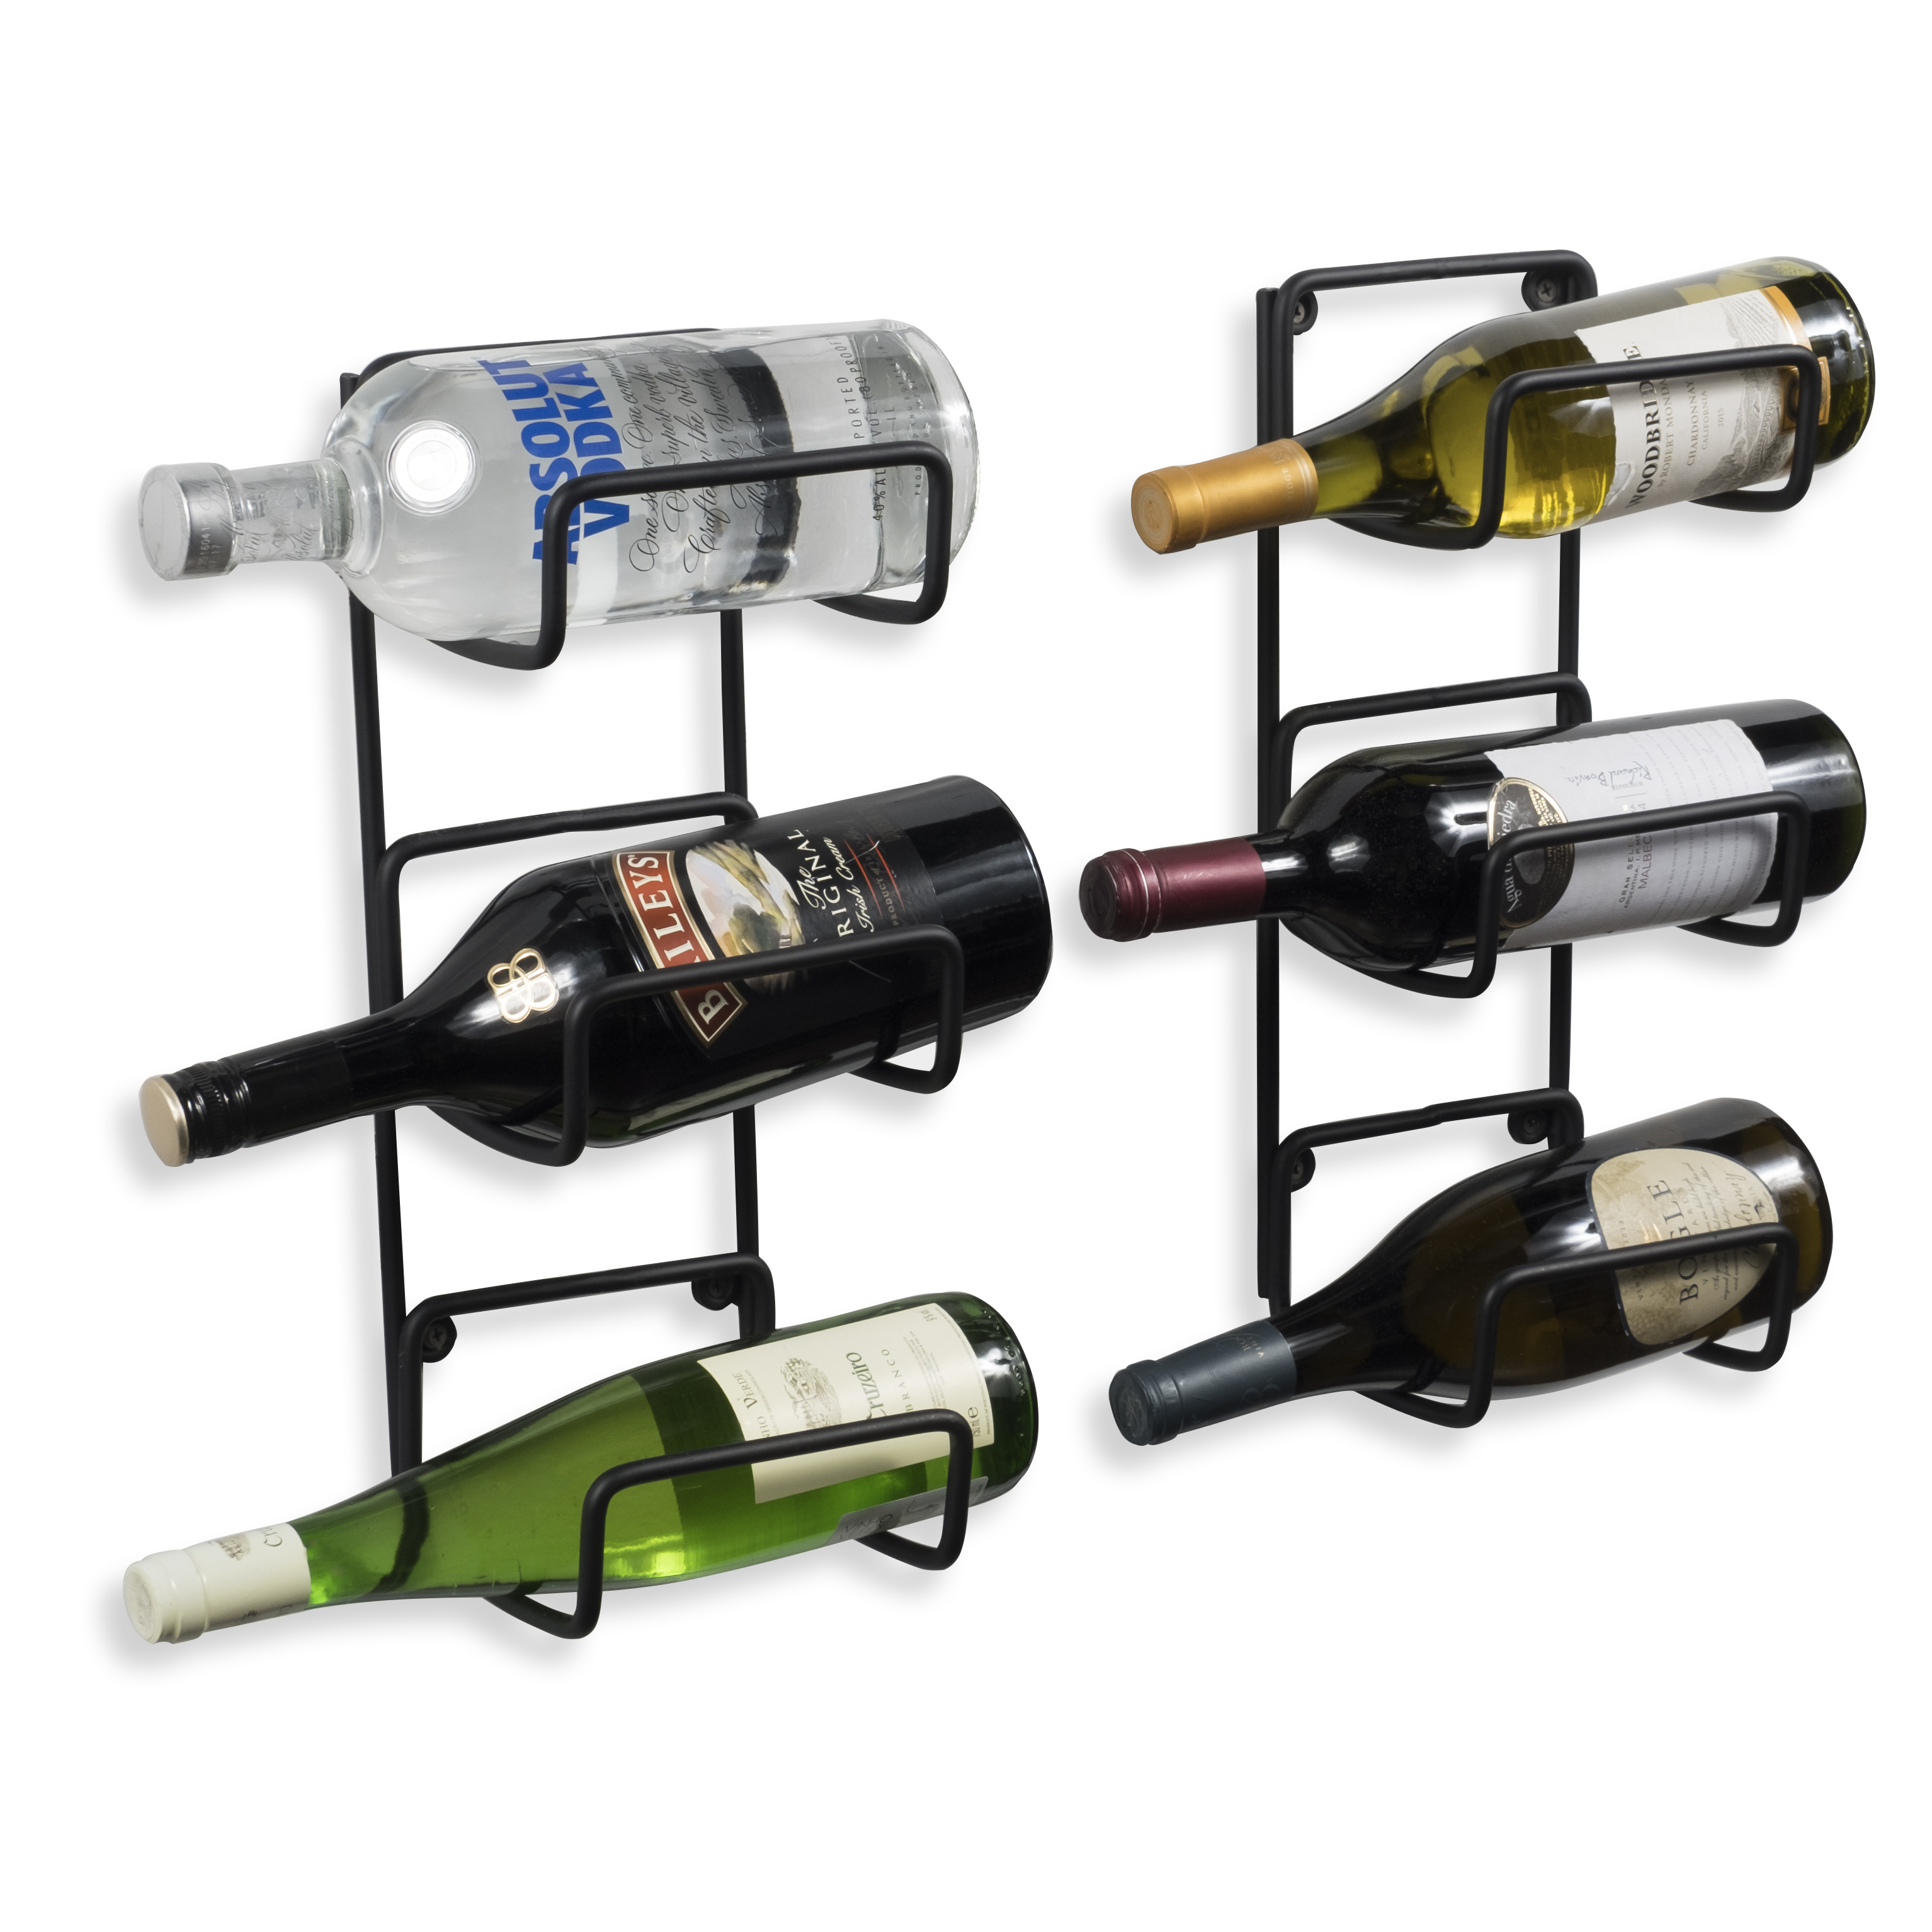 Wrought Iron Wall Mountable Wine Rack Versatile For Storing Bulky Liquor Bottles Set Of 2 In Black